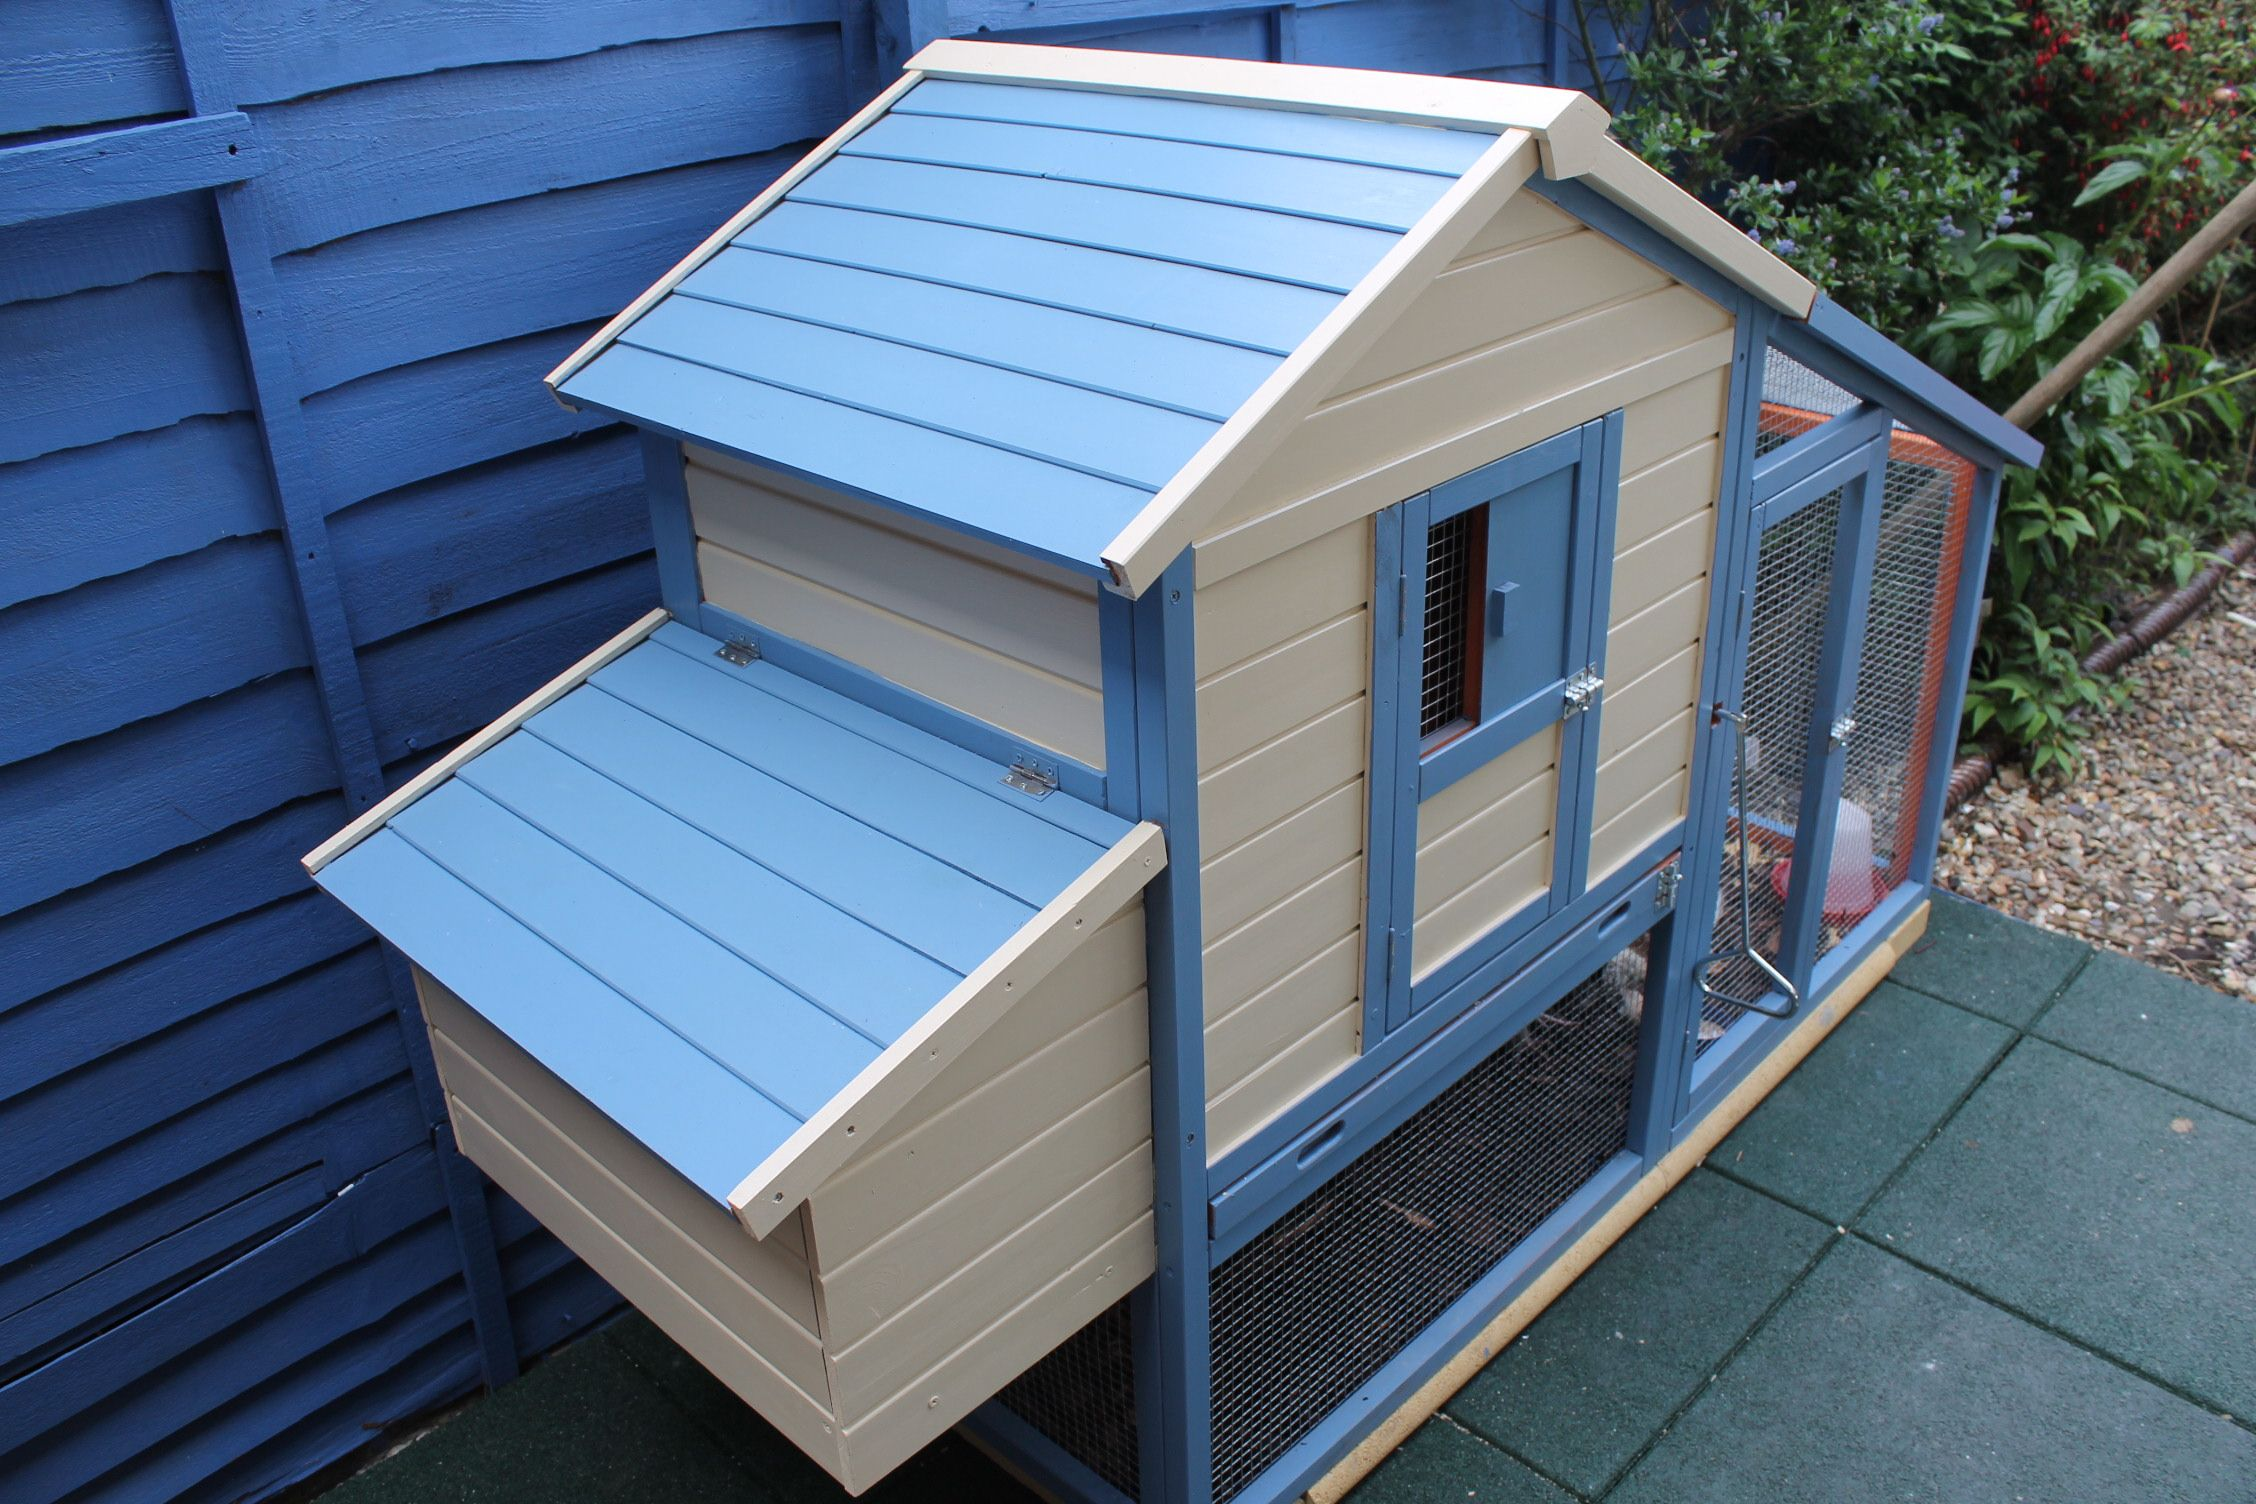 I Finally Got My Chicken Coop Painted I Went For A Beach Hut